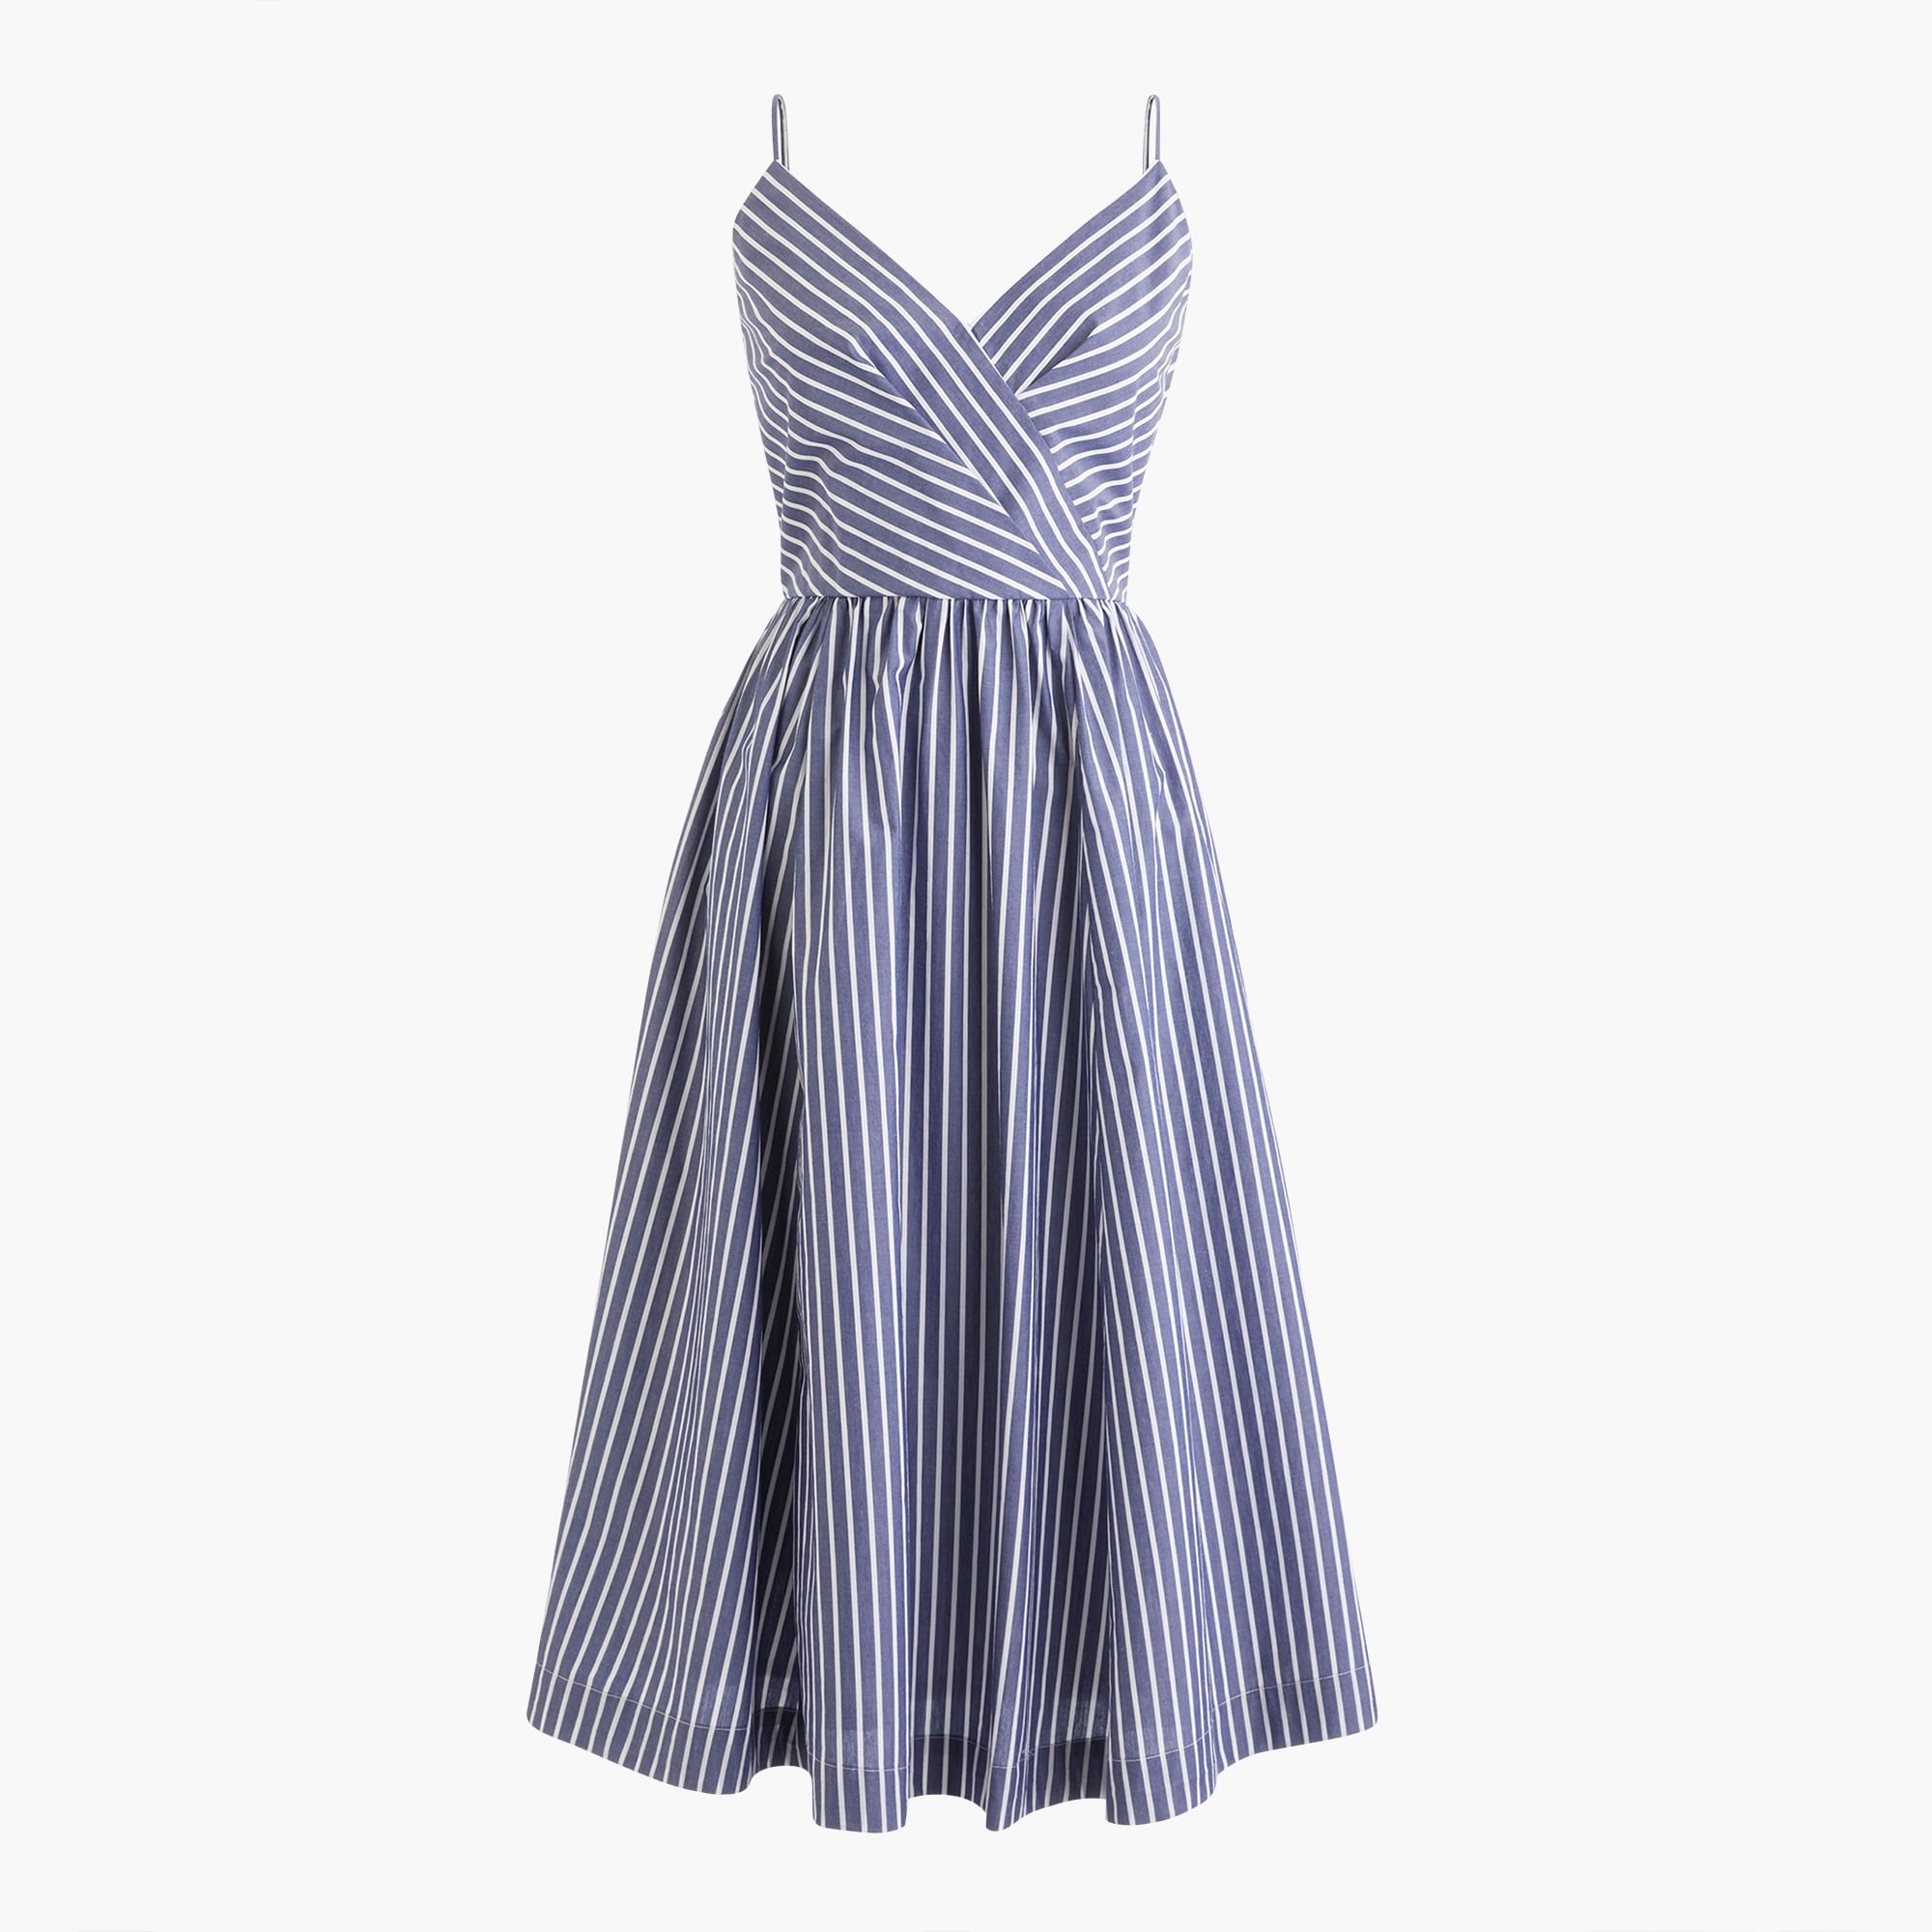 women's midi party dress in shirting stripes - women's dresses